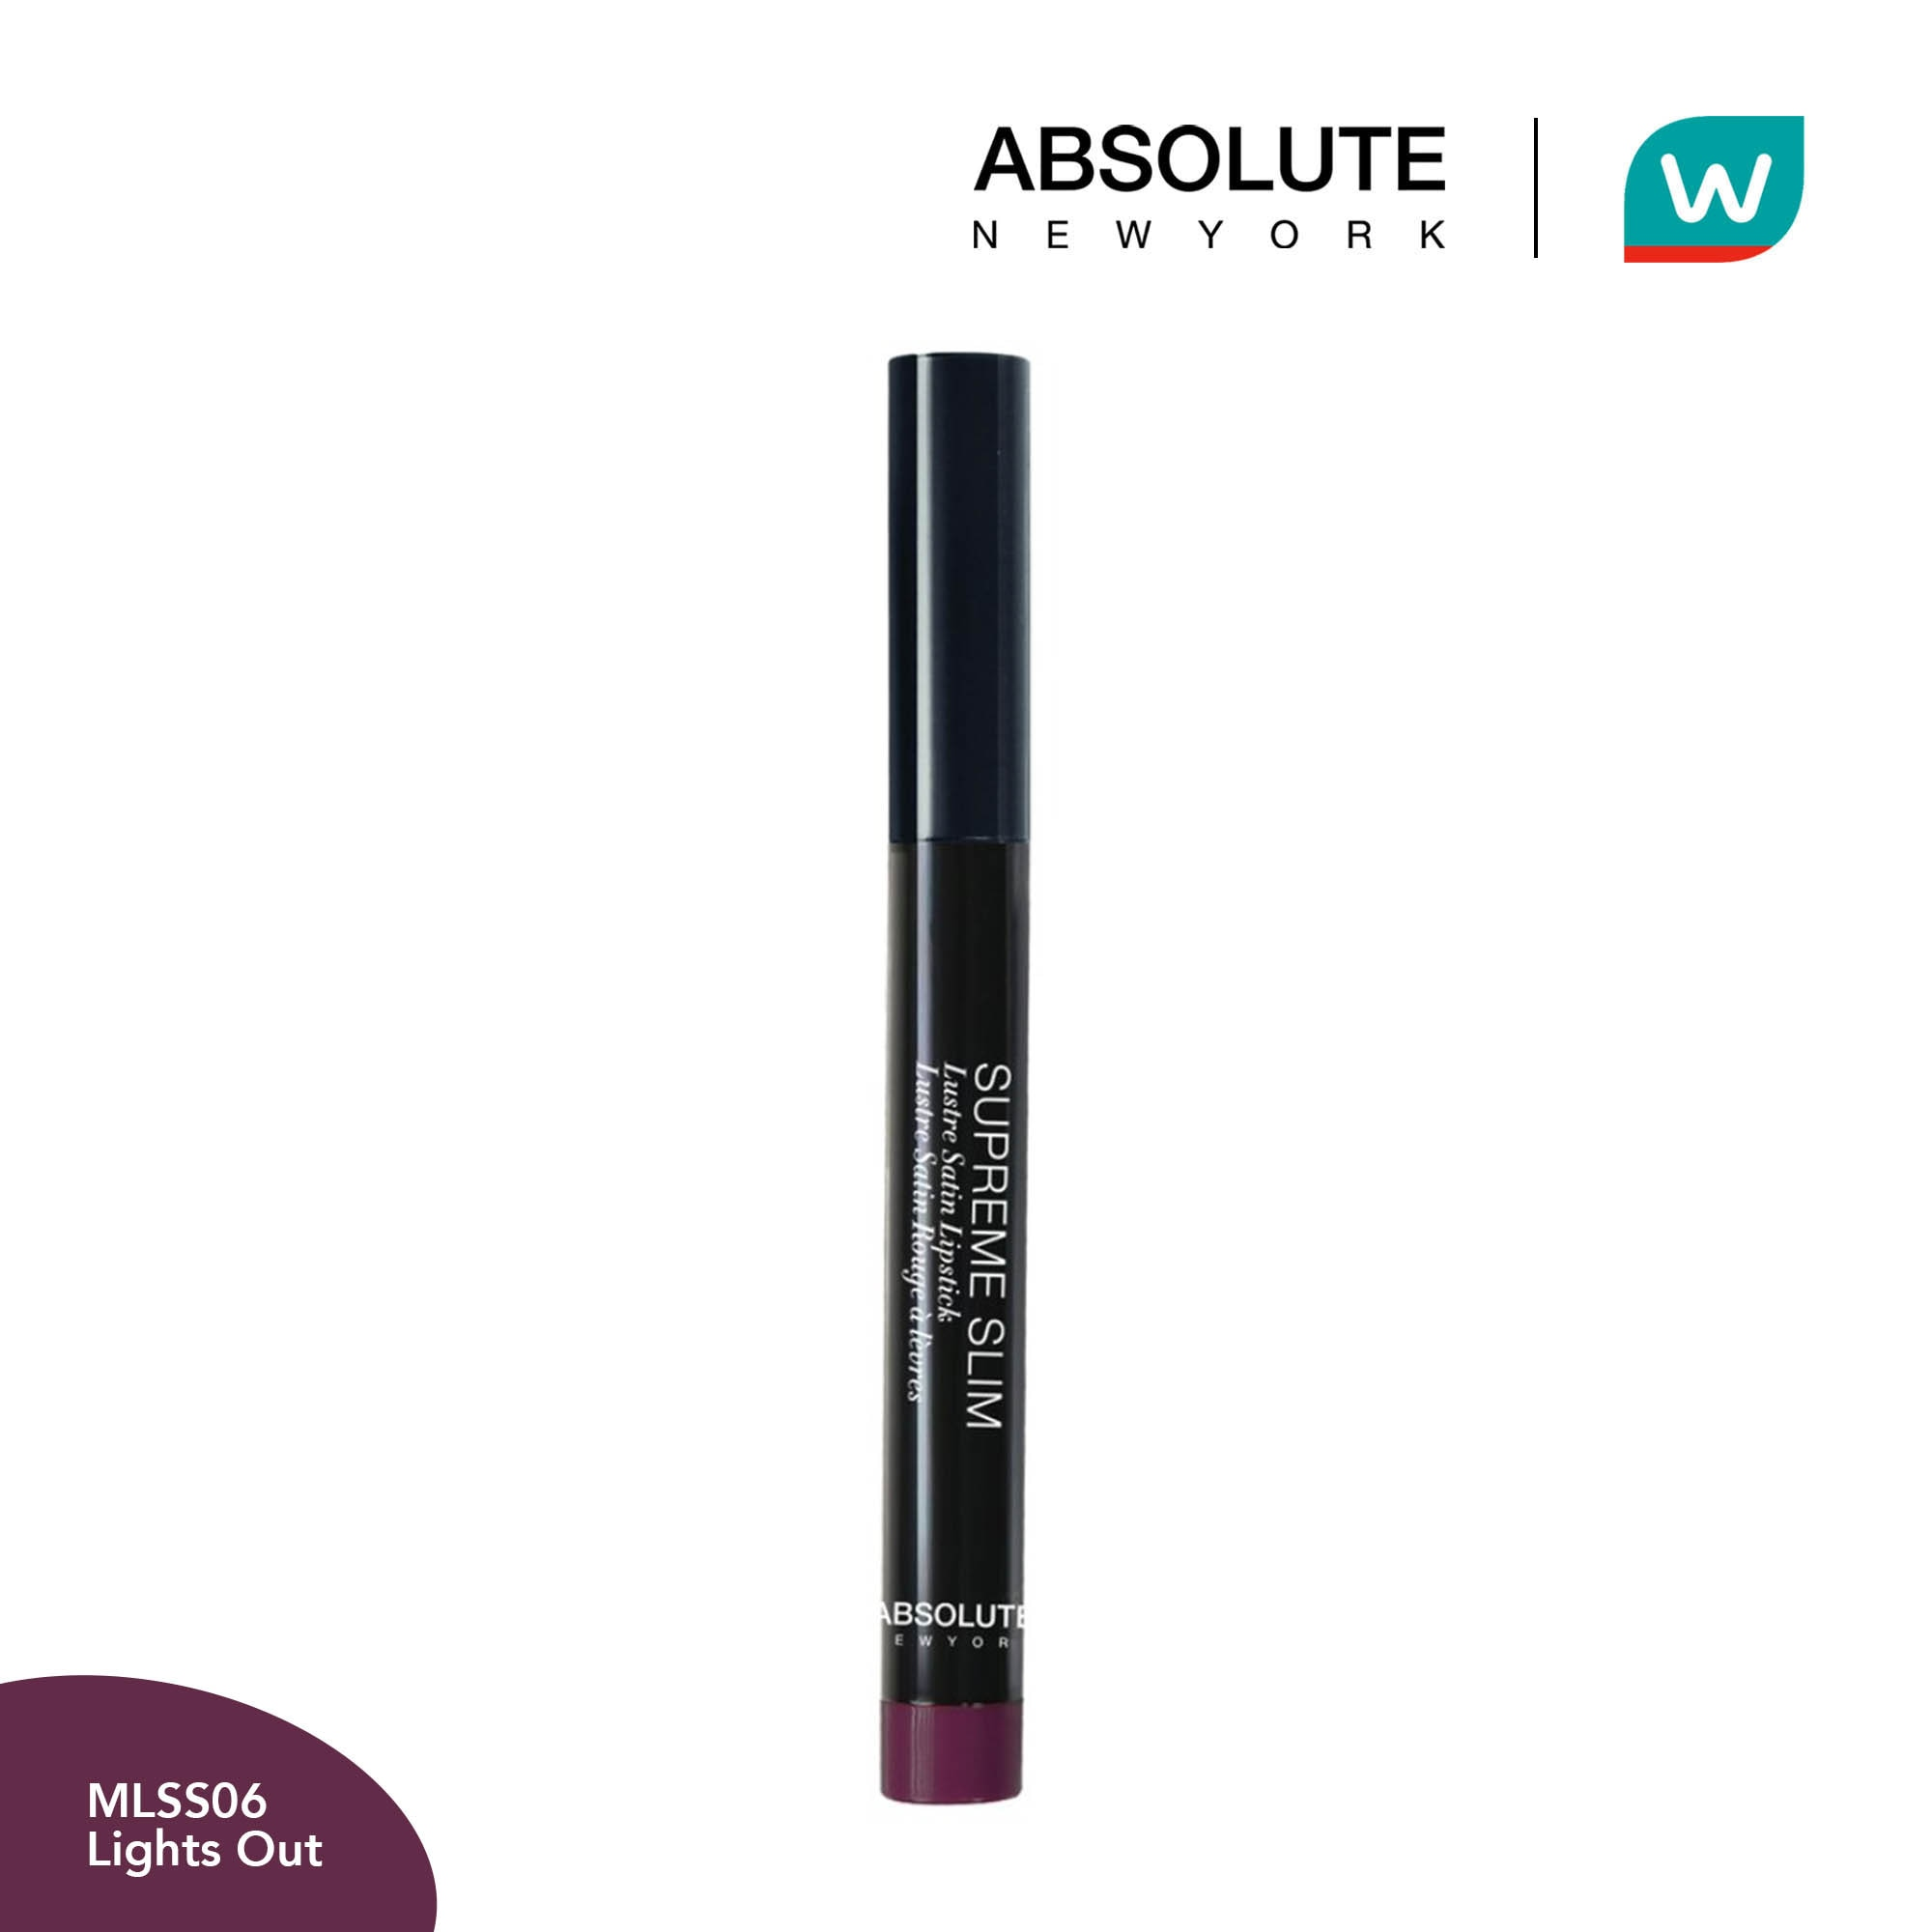 ABSOLUTE NEW YORKSupreme SLS Lights Out 1.3g,Lipstick , Lip Tint and LiplinersWCFREEDELIVER